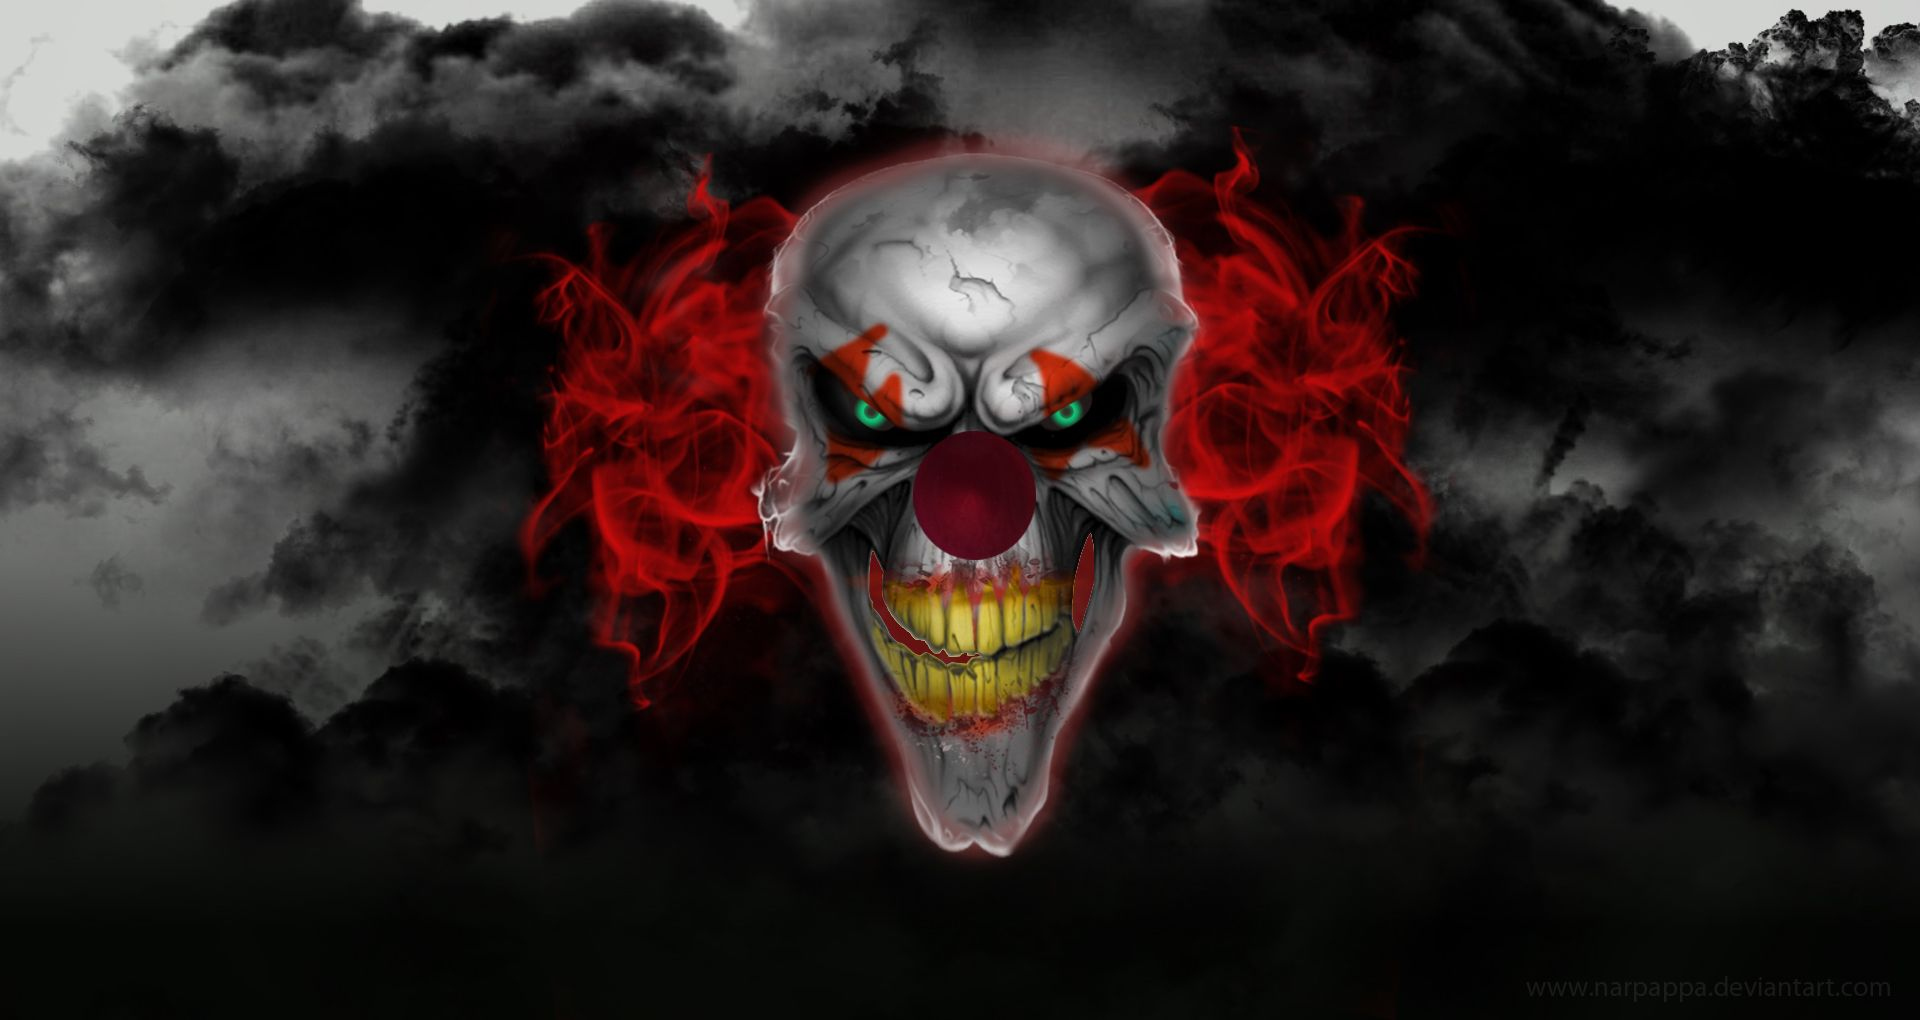 Scary Clown with Red Hair wallpaper from Clowns wallpapers ...